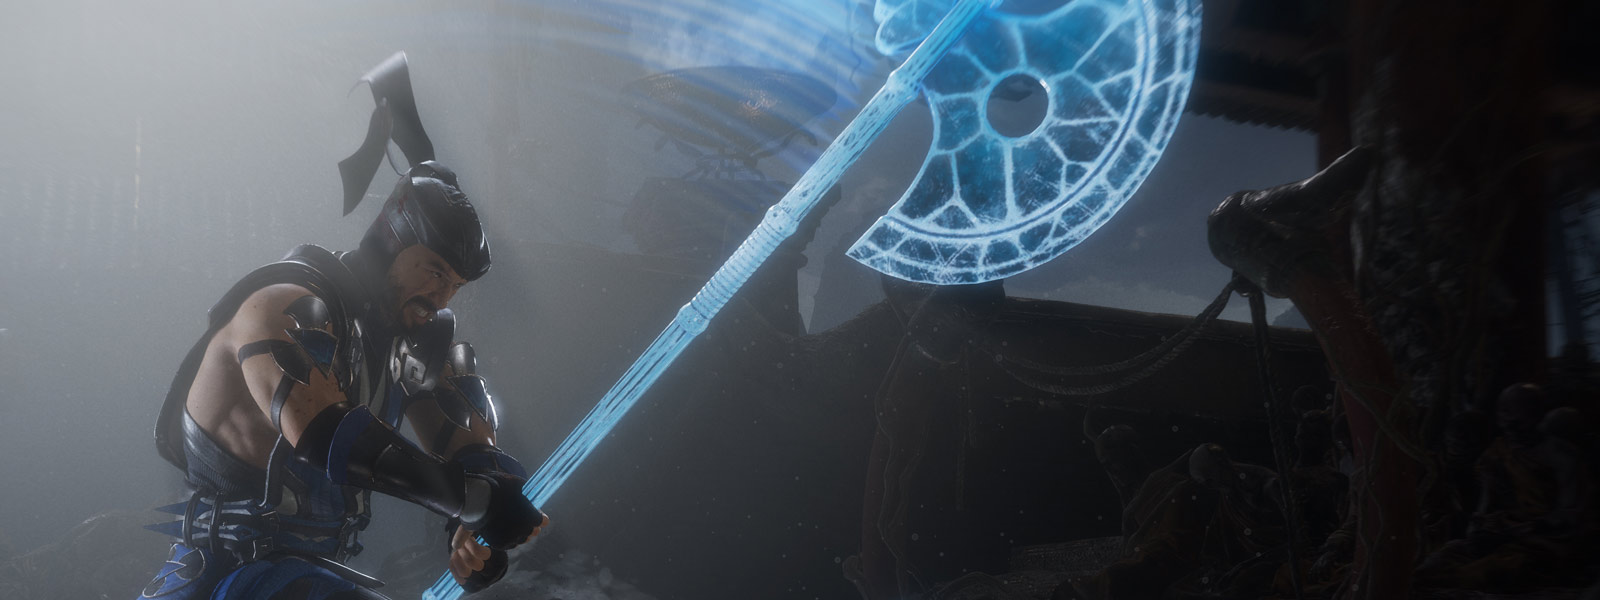 Sub-Zero wields a large axe made of ice and swings downward